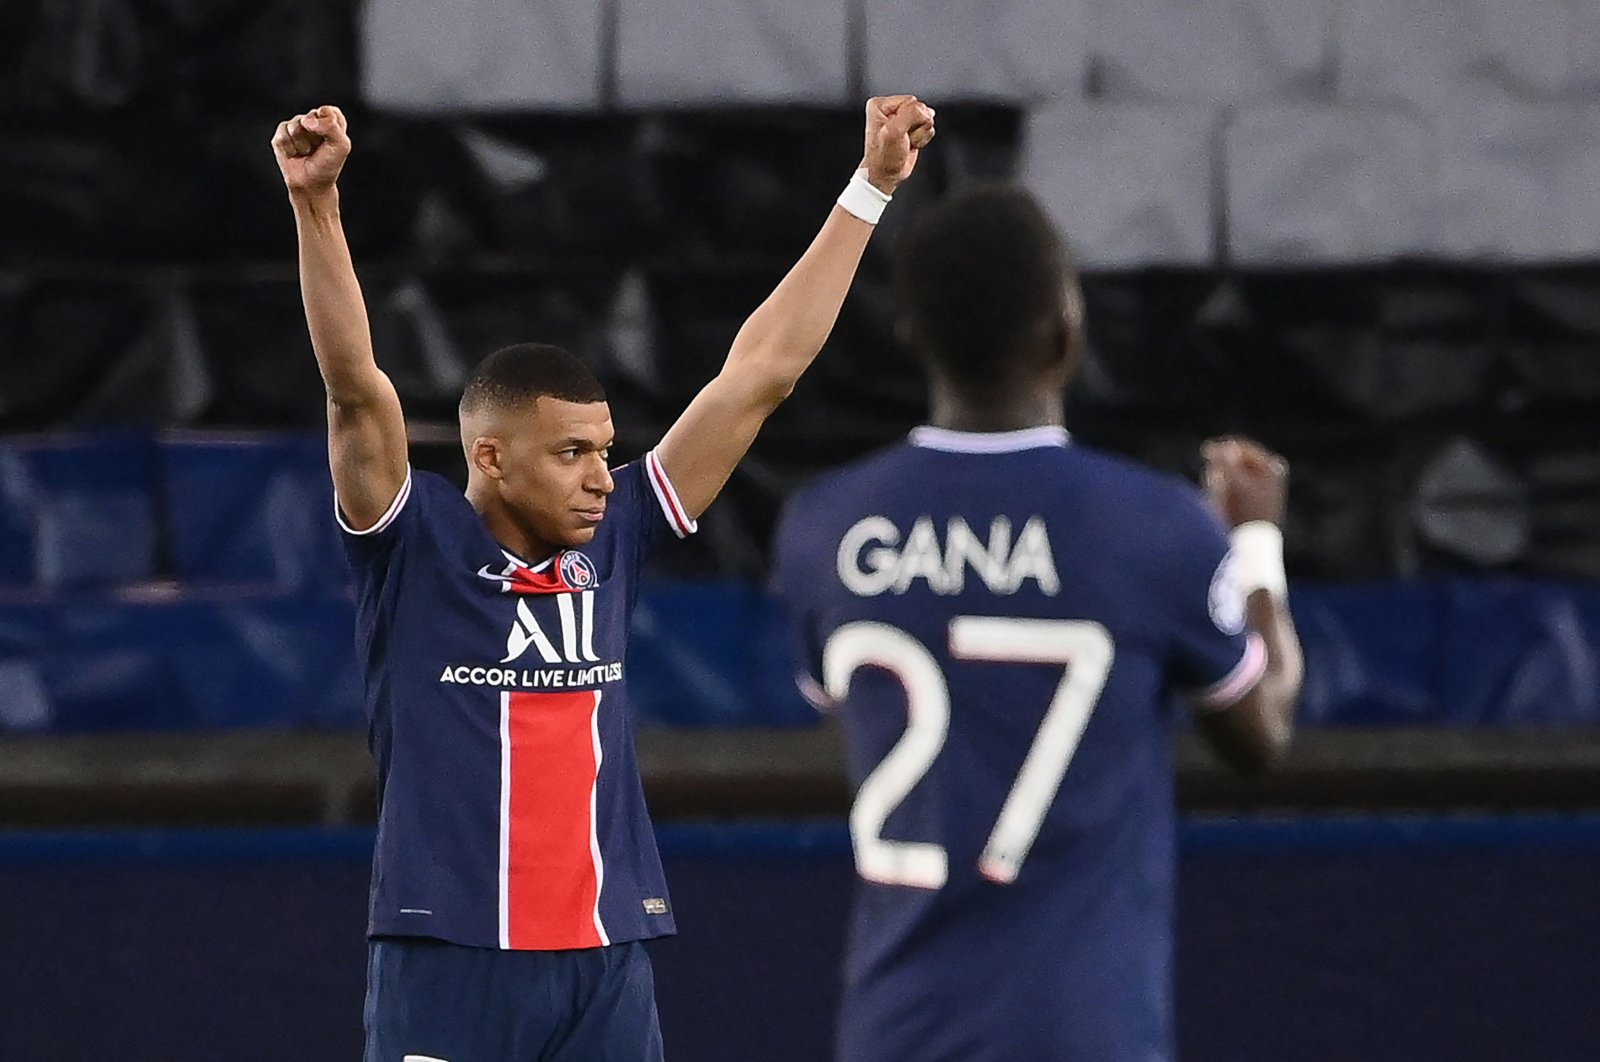 PSG's French forward Kylian Mbappe (L) and Senegalese midfielder Idrissa Gueye celebrate after winning the UEFA Champions League quarterfinal second leg football match against Bayern Munich at the Parc des Princes stadium in Paris, France, April 13, 2021. (AFP Photo)